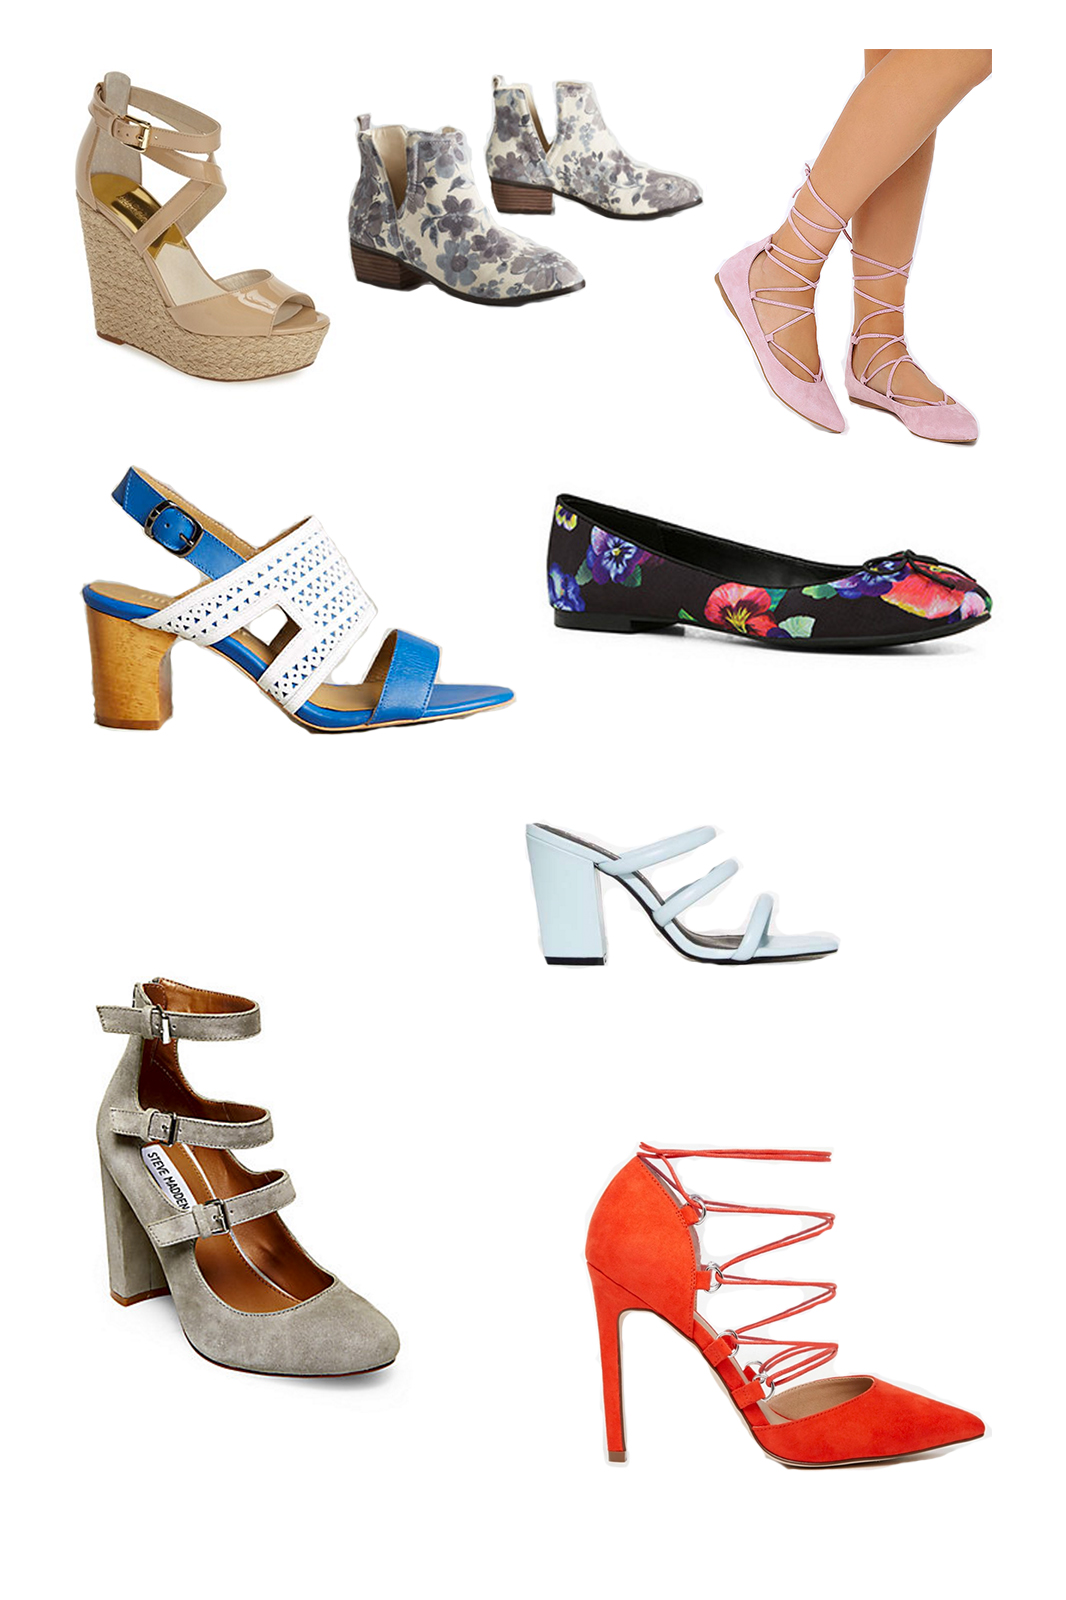 shoes, ASOS, Lulu's, Anthropologie, Steve Madden, Modcloth, ALDO, Nordstrom, accessories, fashion blogger, style blogger, fashion, style, spring style, spring fashion, Miami fashion blogger